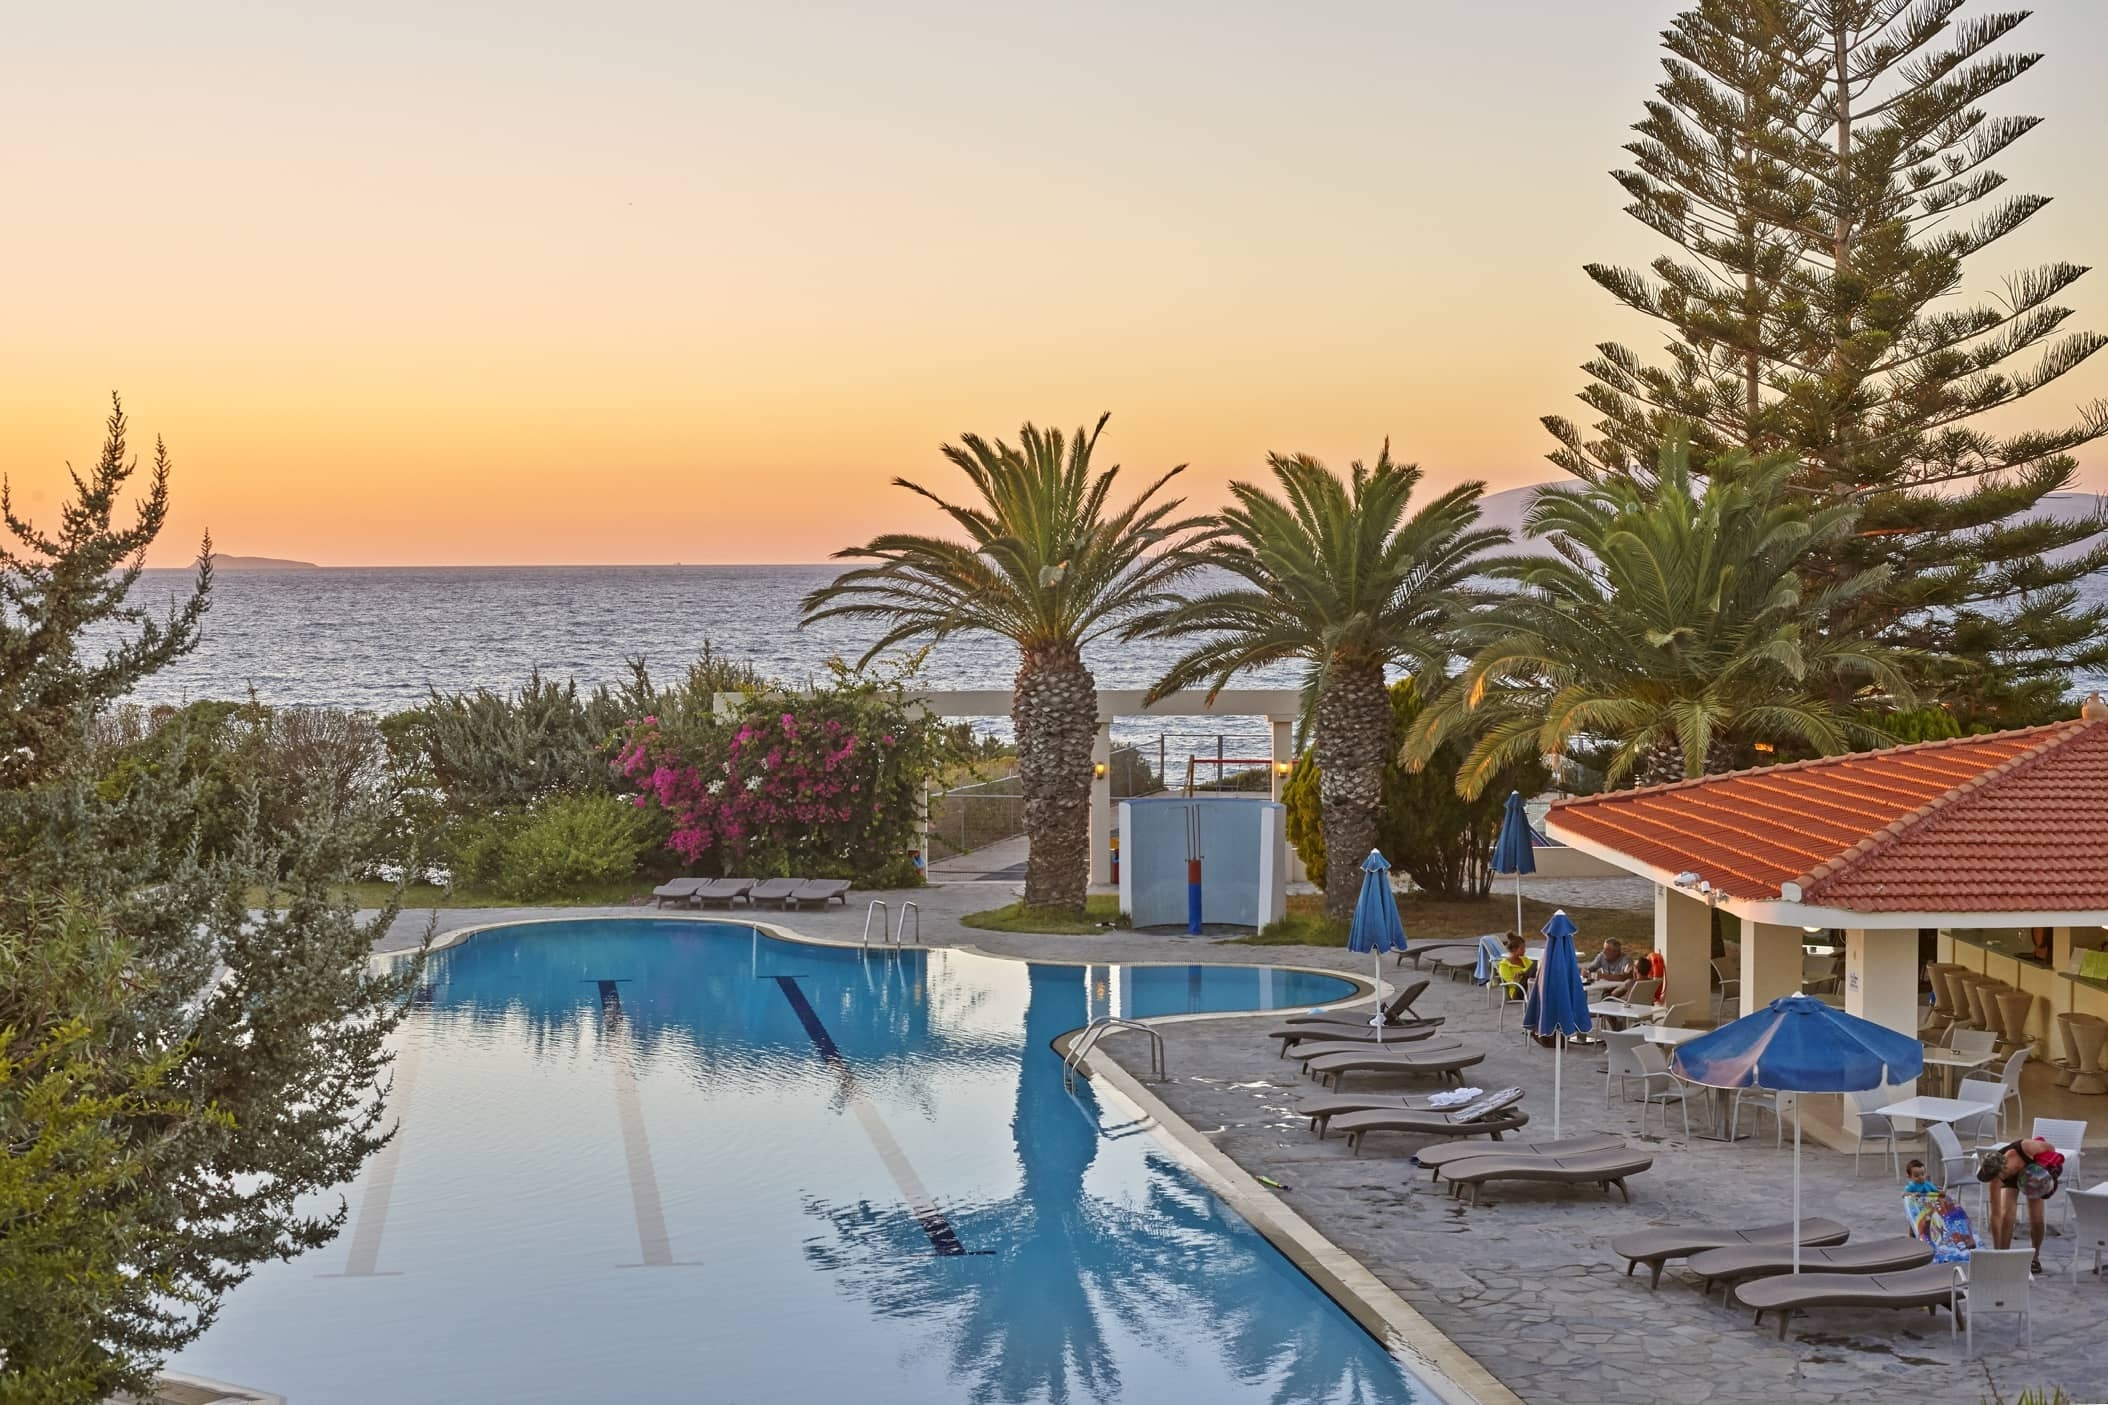 Ammos Resort - Κως ? -50% ? 6 Ημέρες (5 Διανυκτερεύσεις) ? 2 Άτομα ΚΑΙ 2 Παιδιά, ένα έως 14 ετών και ένα έως 3 ετών ? All Inclusive ? 13/07/2017 έως 23/08/2017 ? Δωρεάν Ξαπλώστρες και Ομπρέλες στην Πισίνα ή στην Ιδιωτική Παραλία!